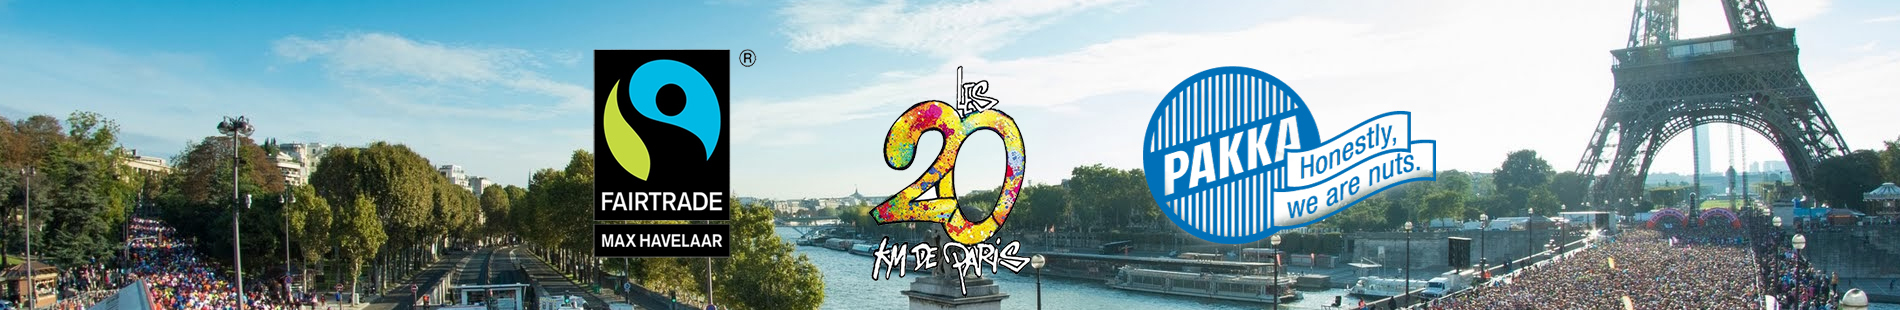 20-km-de-paris-header